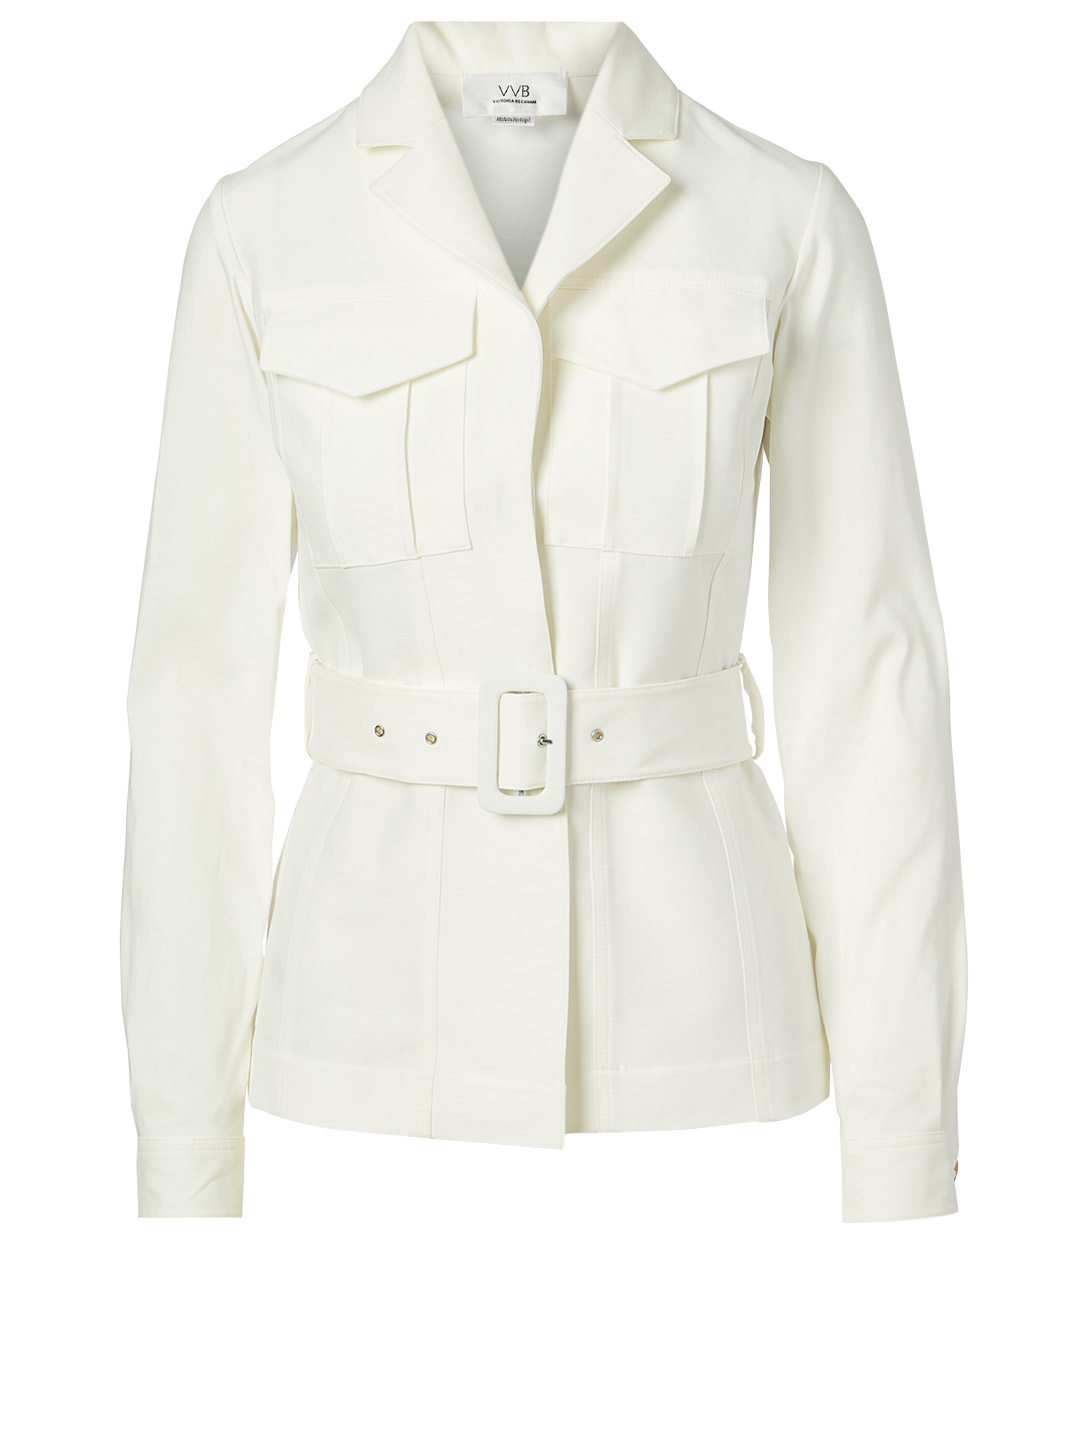 VICTORIA VICTORIA BECKHAM Cotton-Blend Safari Jacket With Belt Women's White